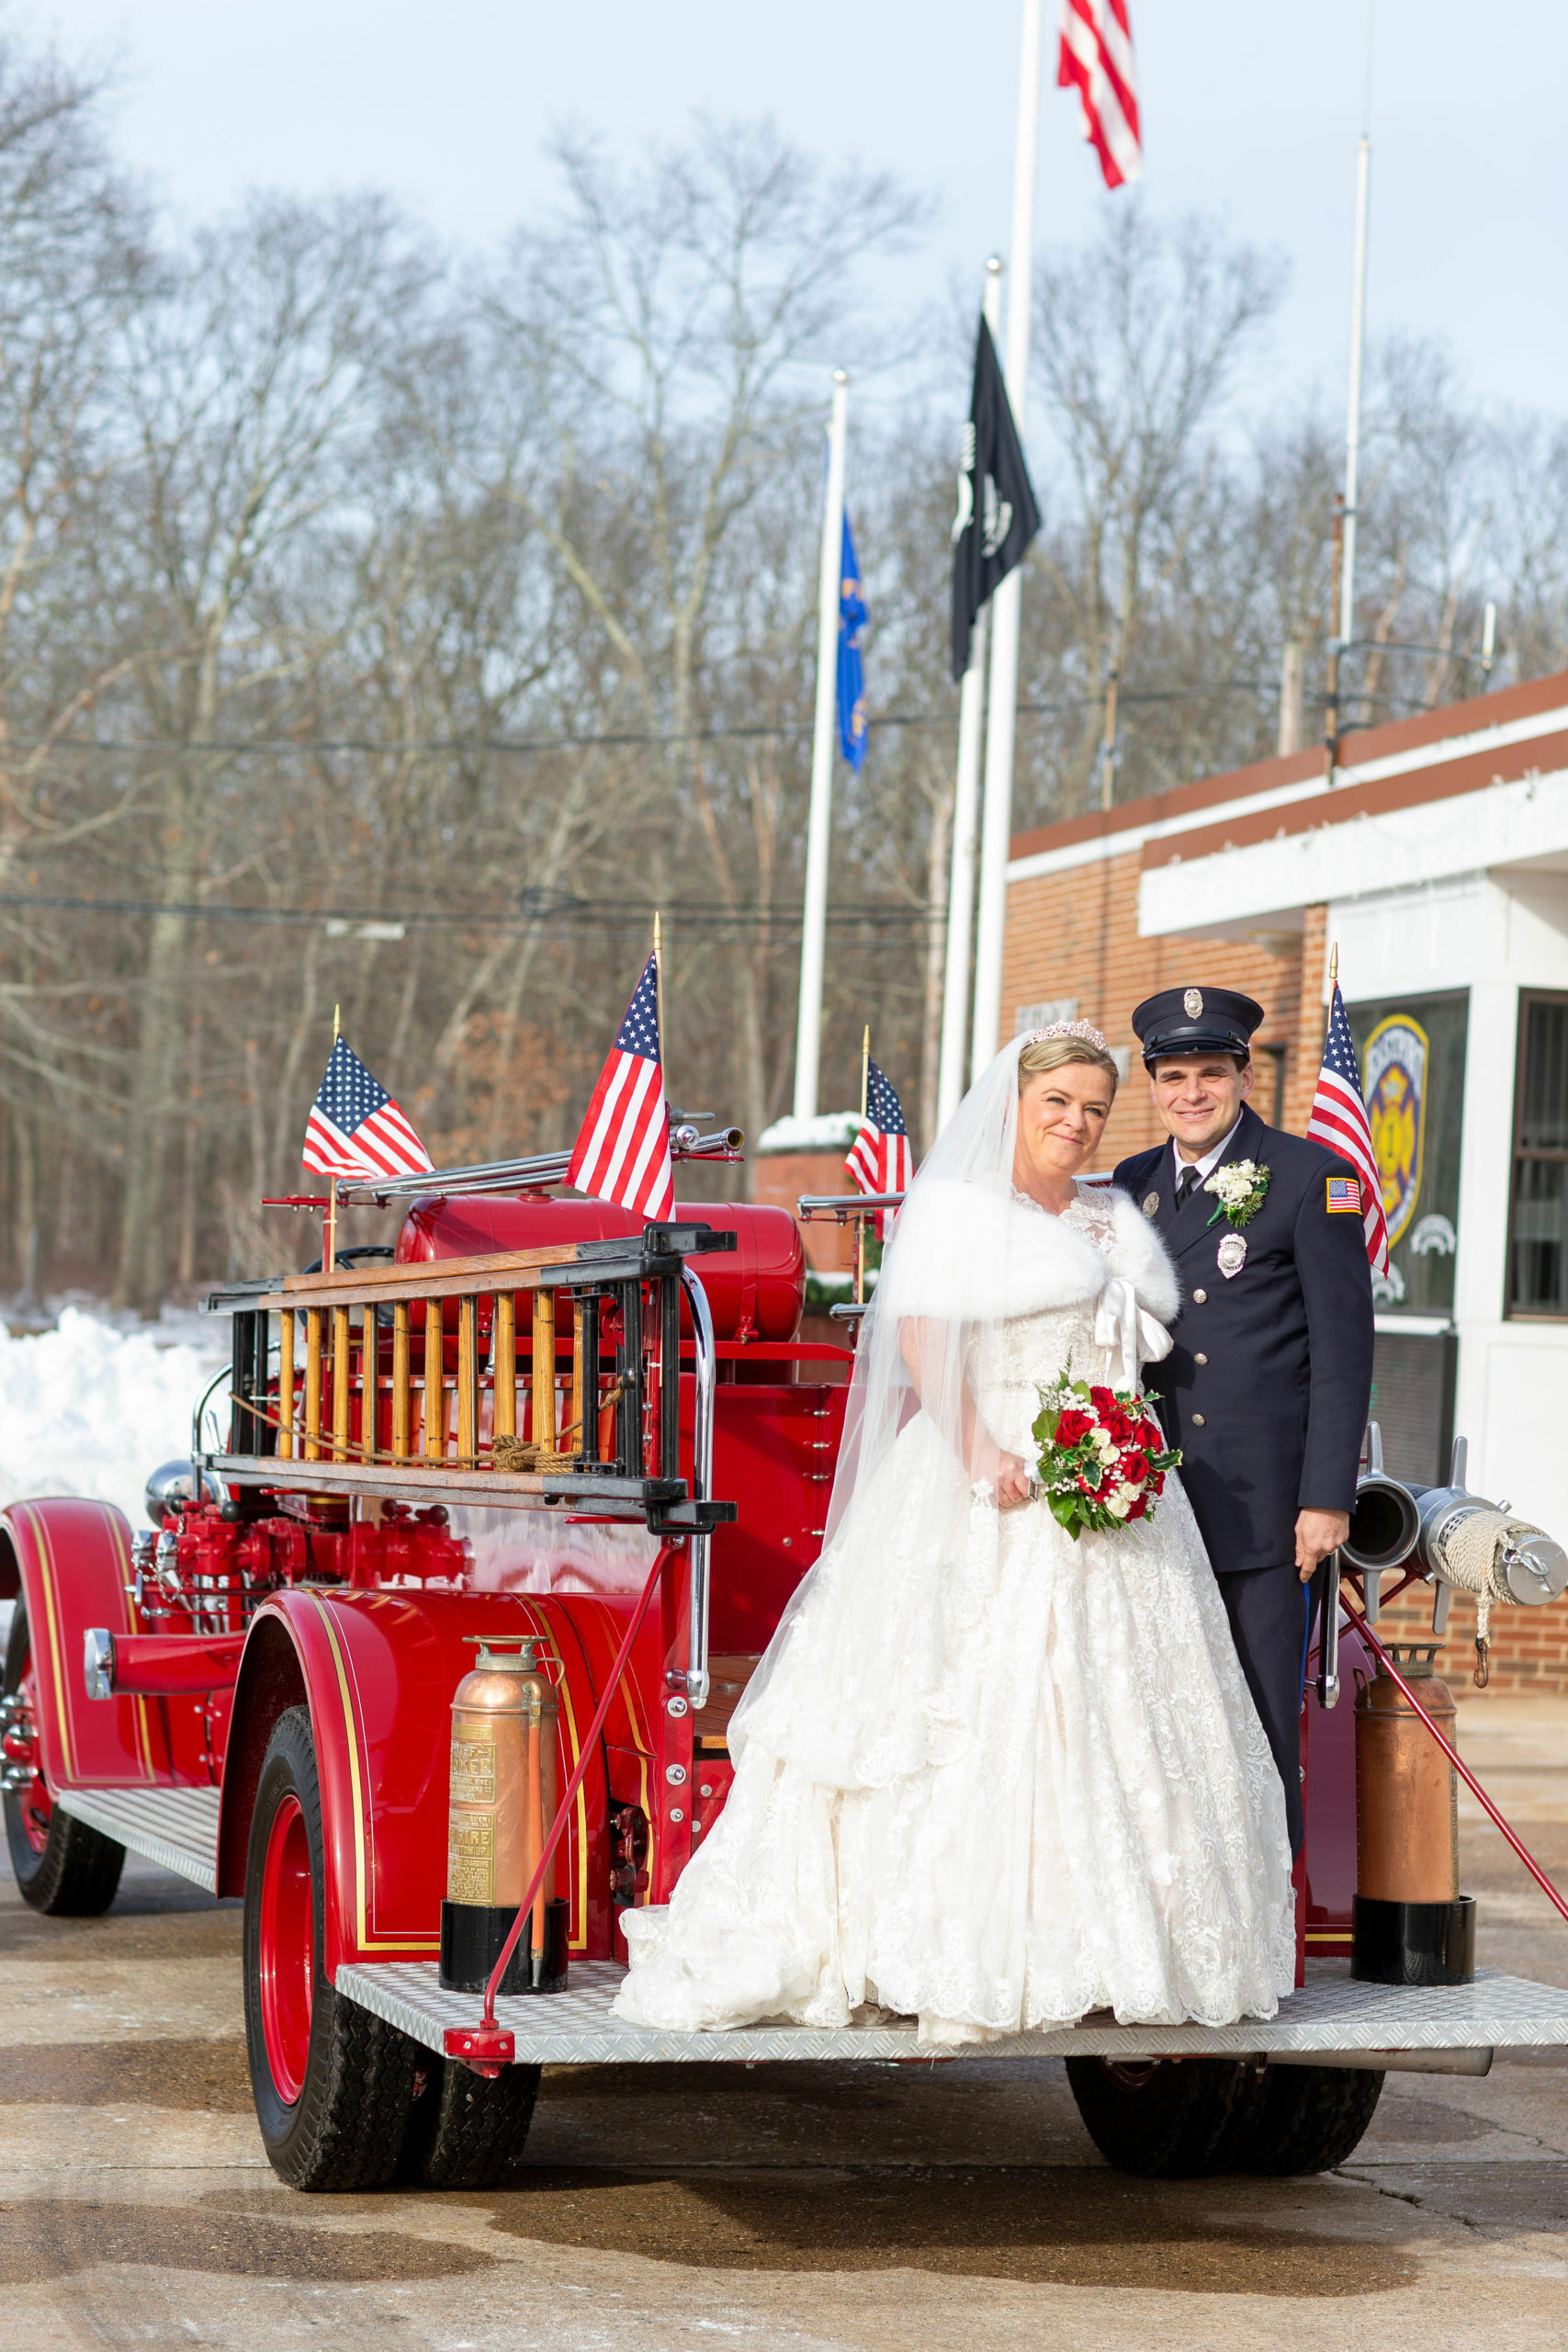 Newlyweds Billy Glover and Madeline Graham